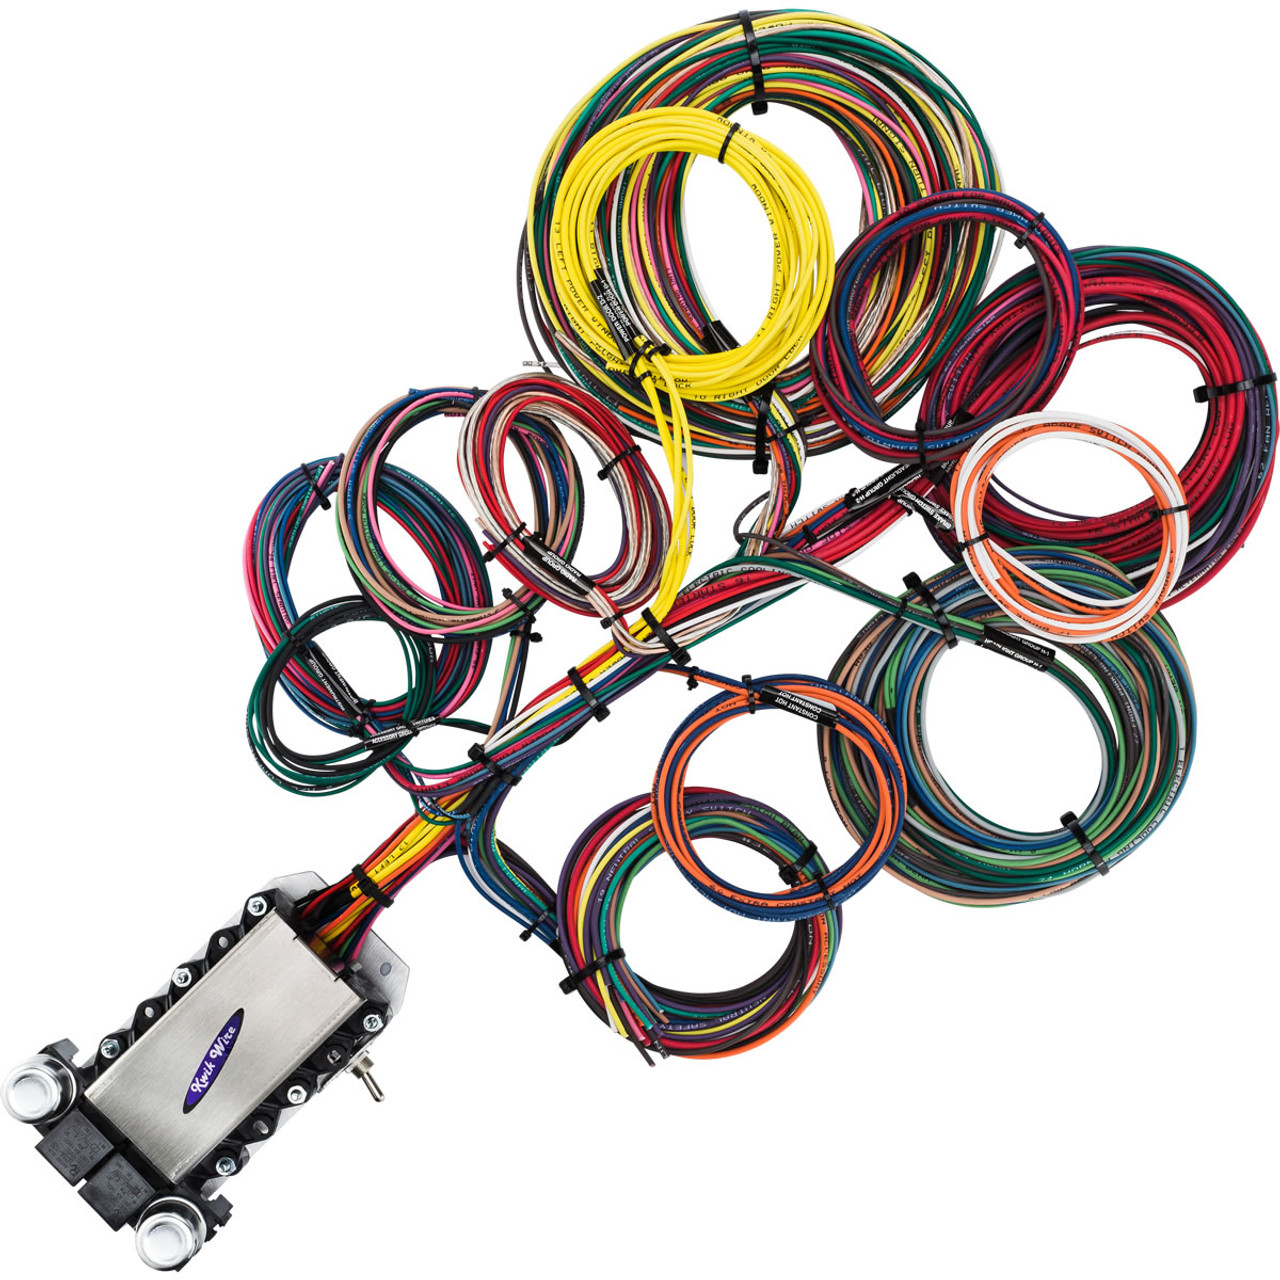 22 circuit ford wire harness kwikwire com electrify your ride eletrical wire 22 circuit ford wire harness